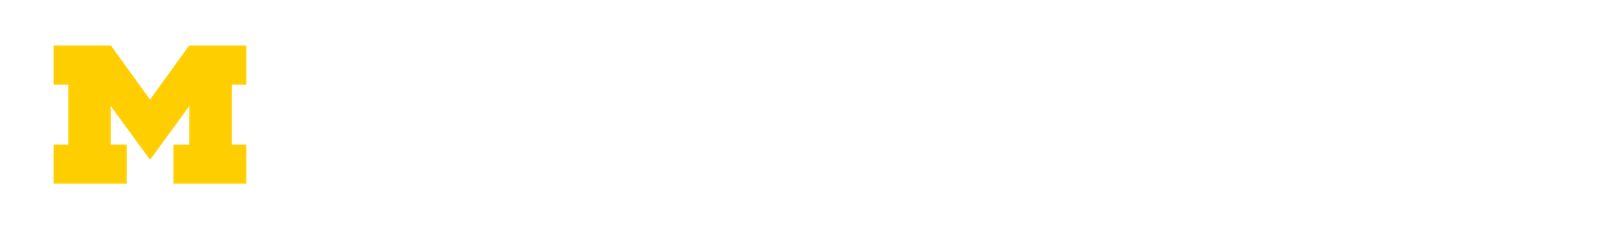 University of Michigan Logotipo